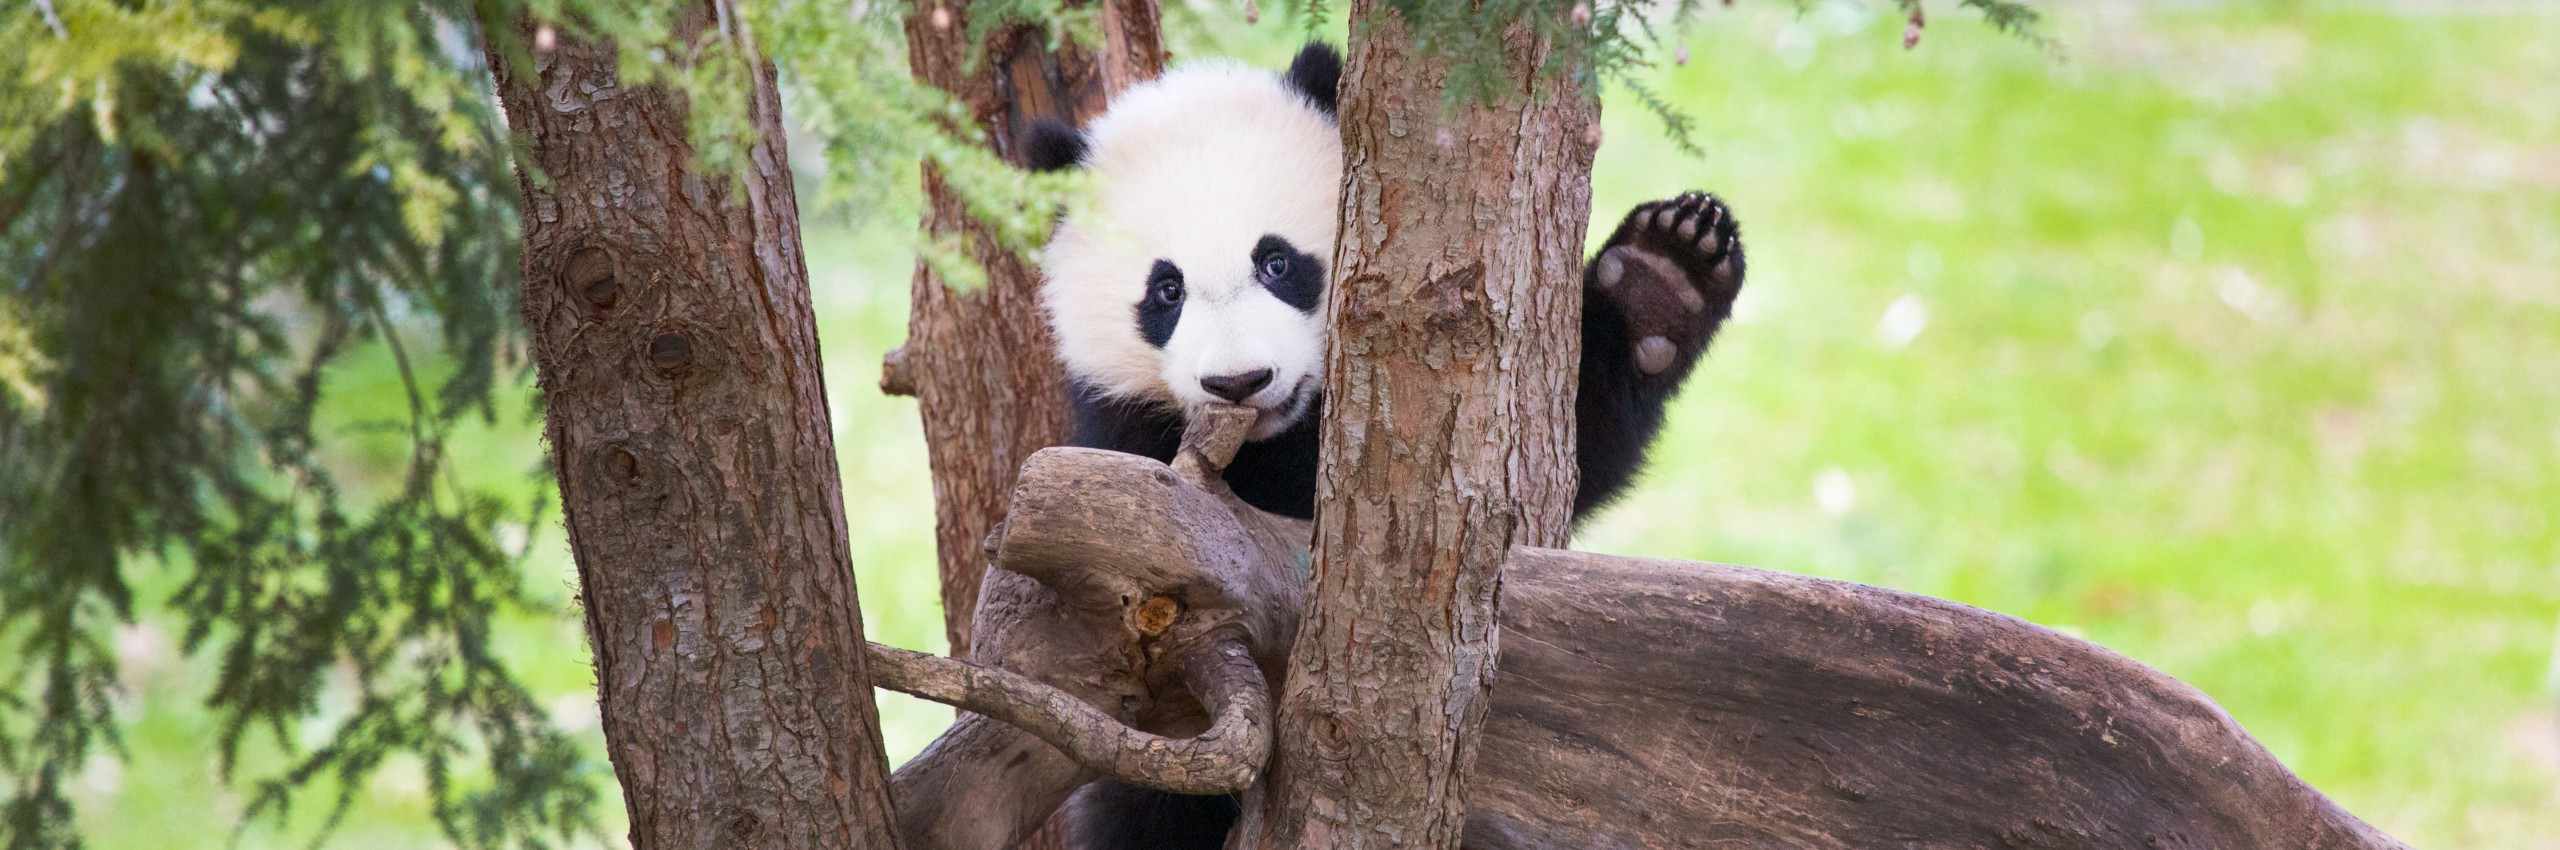 Giant panda Bei Bei in a tree.